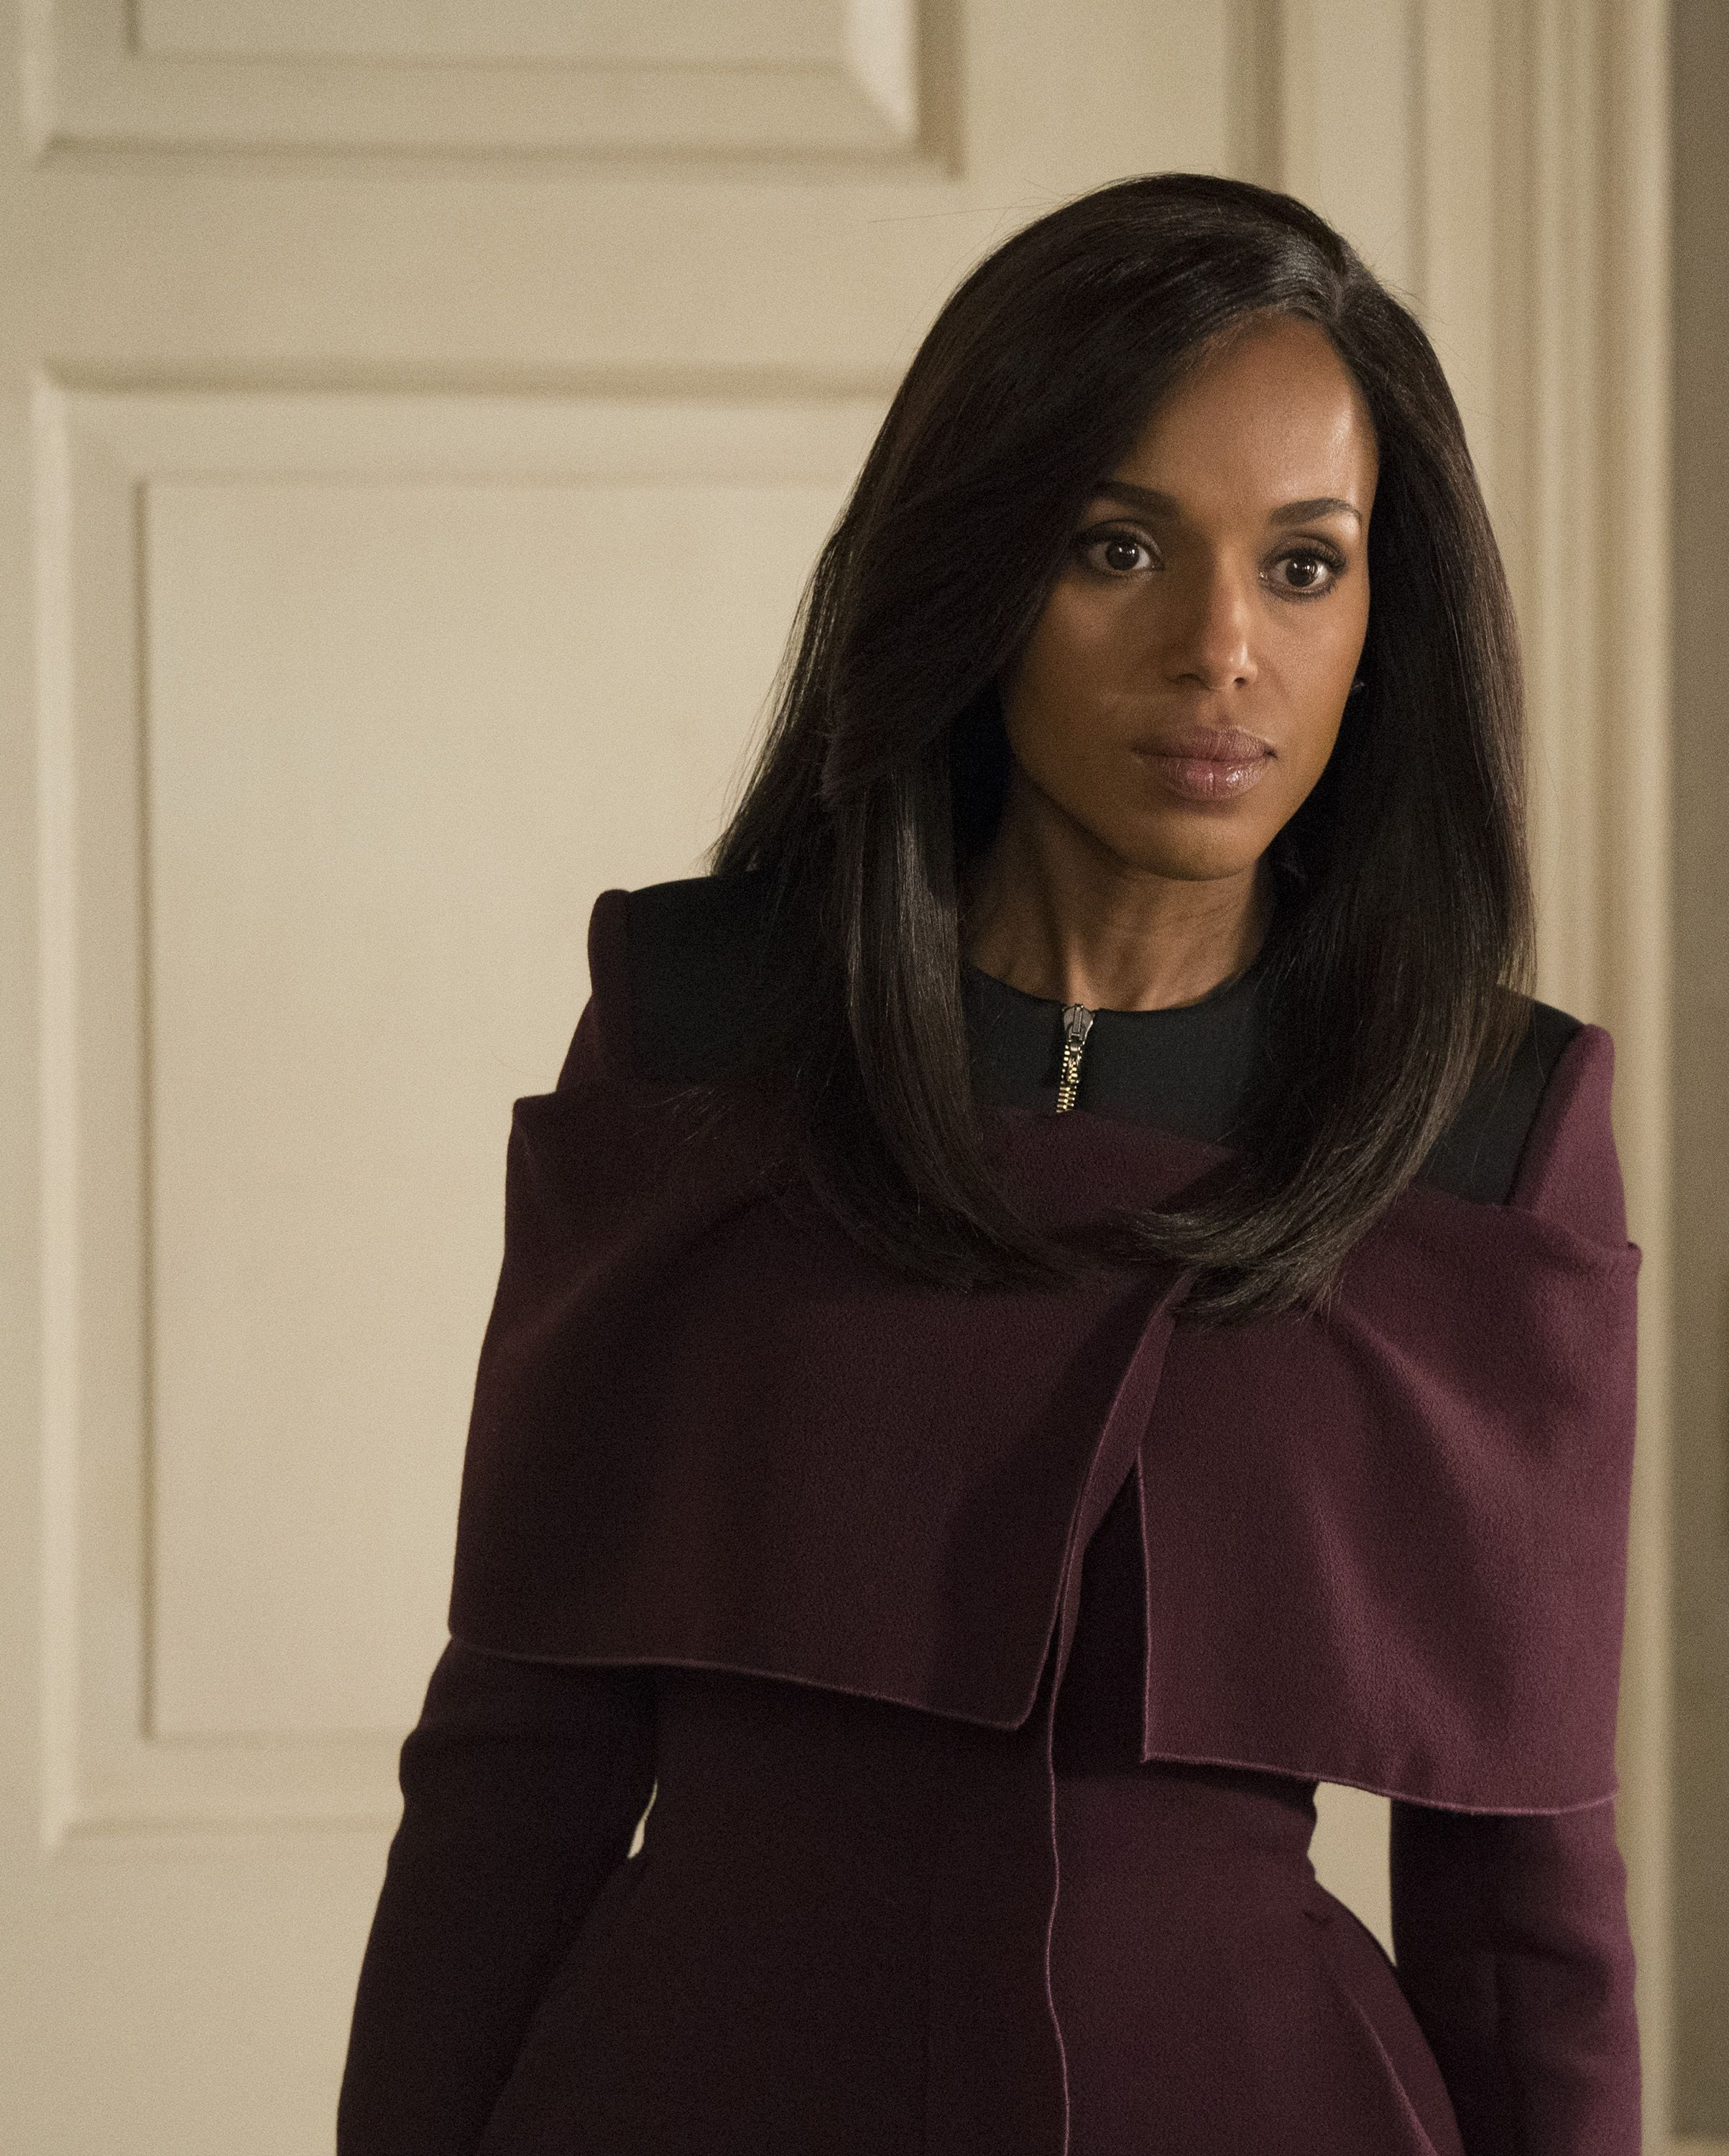 a903365c5023 Olivia Pope (Kerry Washington) in Scandal 7x10